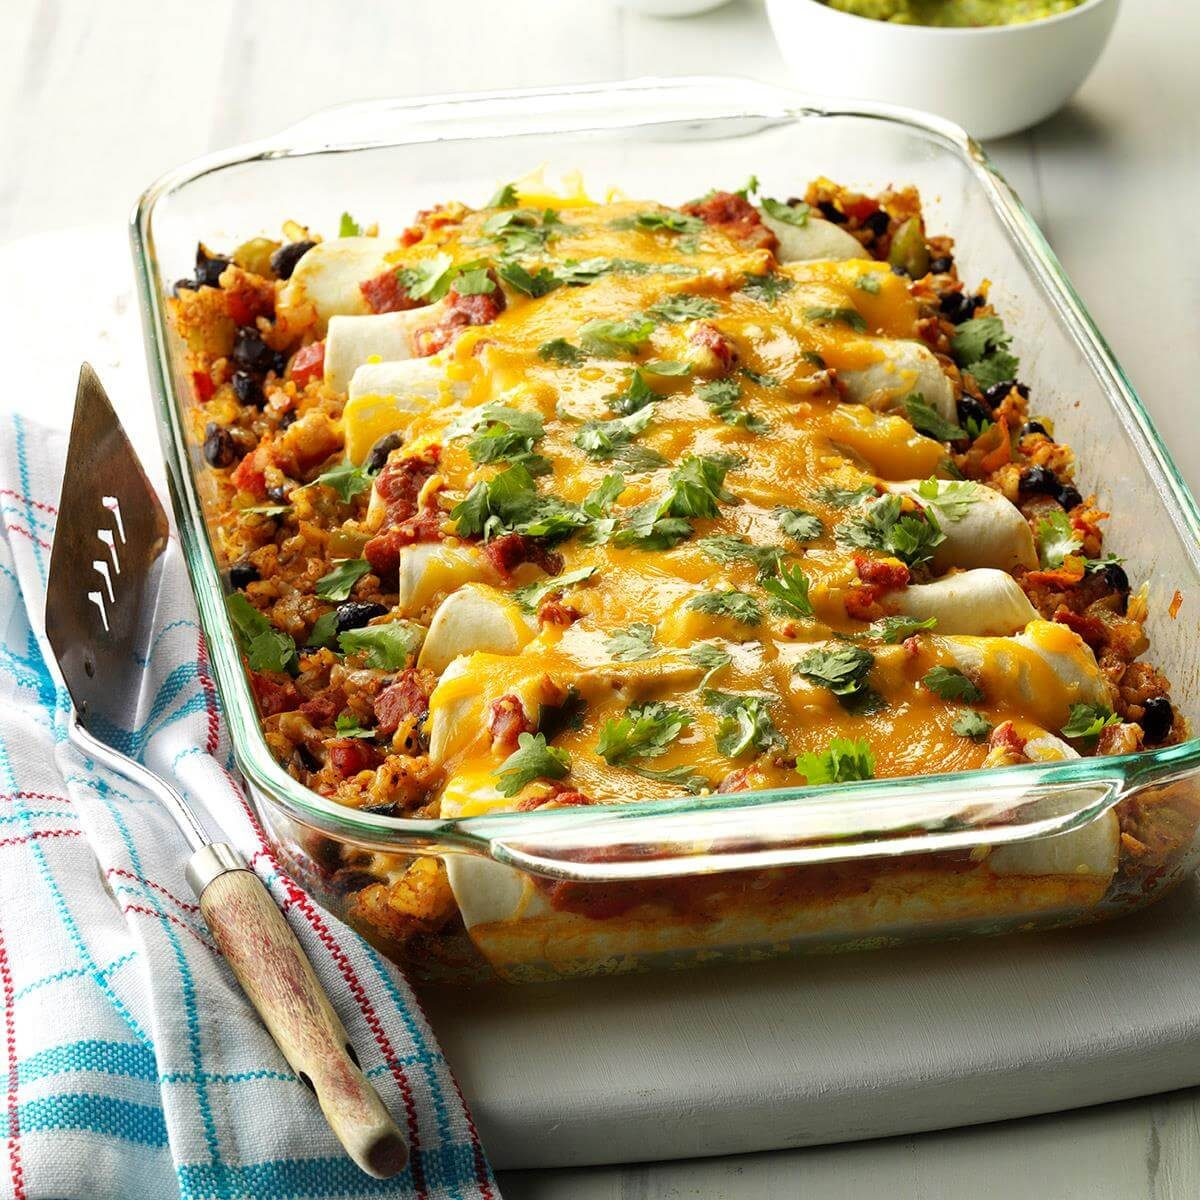 Top 10 Mexican Dinner Recipes: Black Bean And Rice Enchiladas Recipe